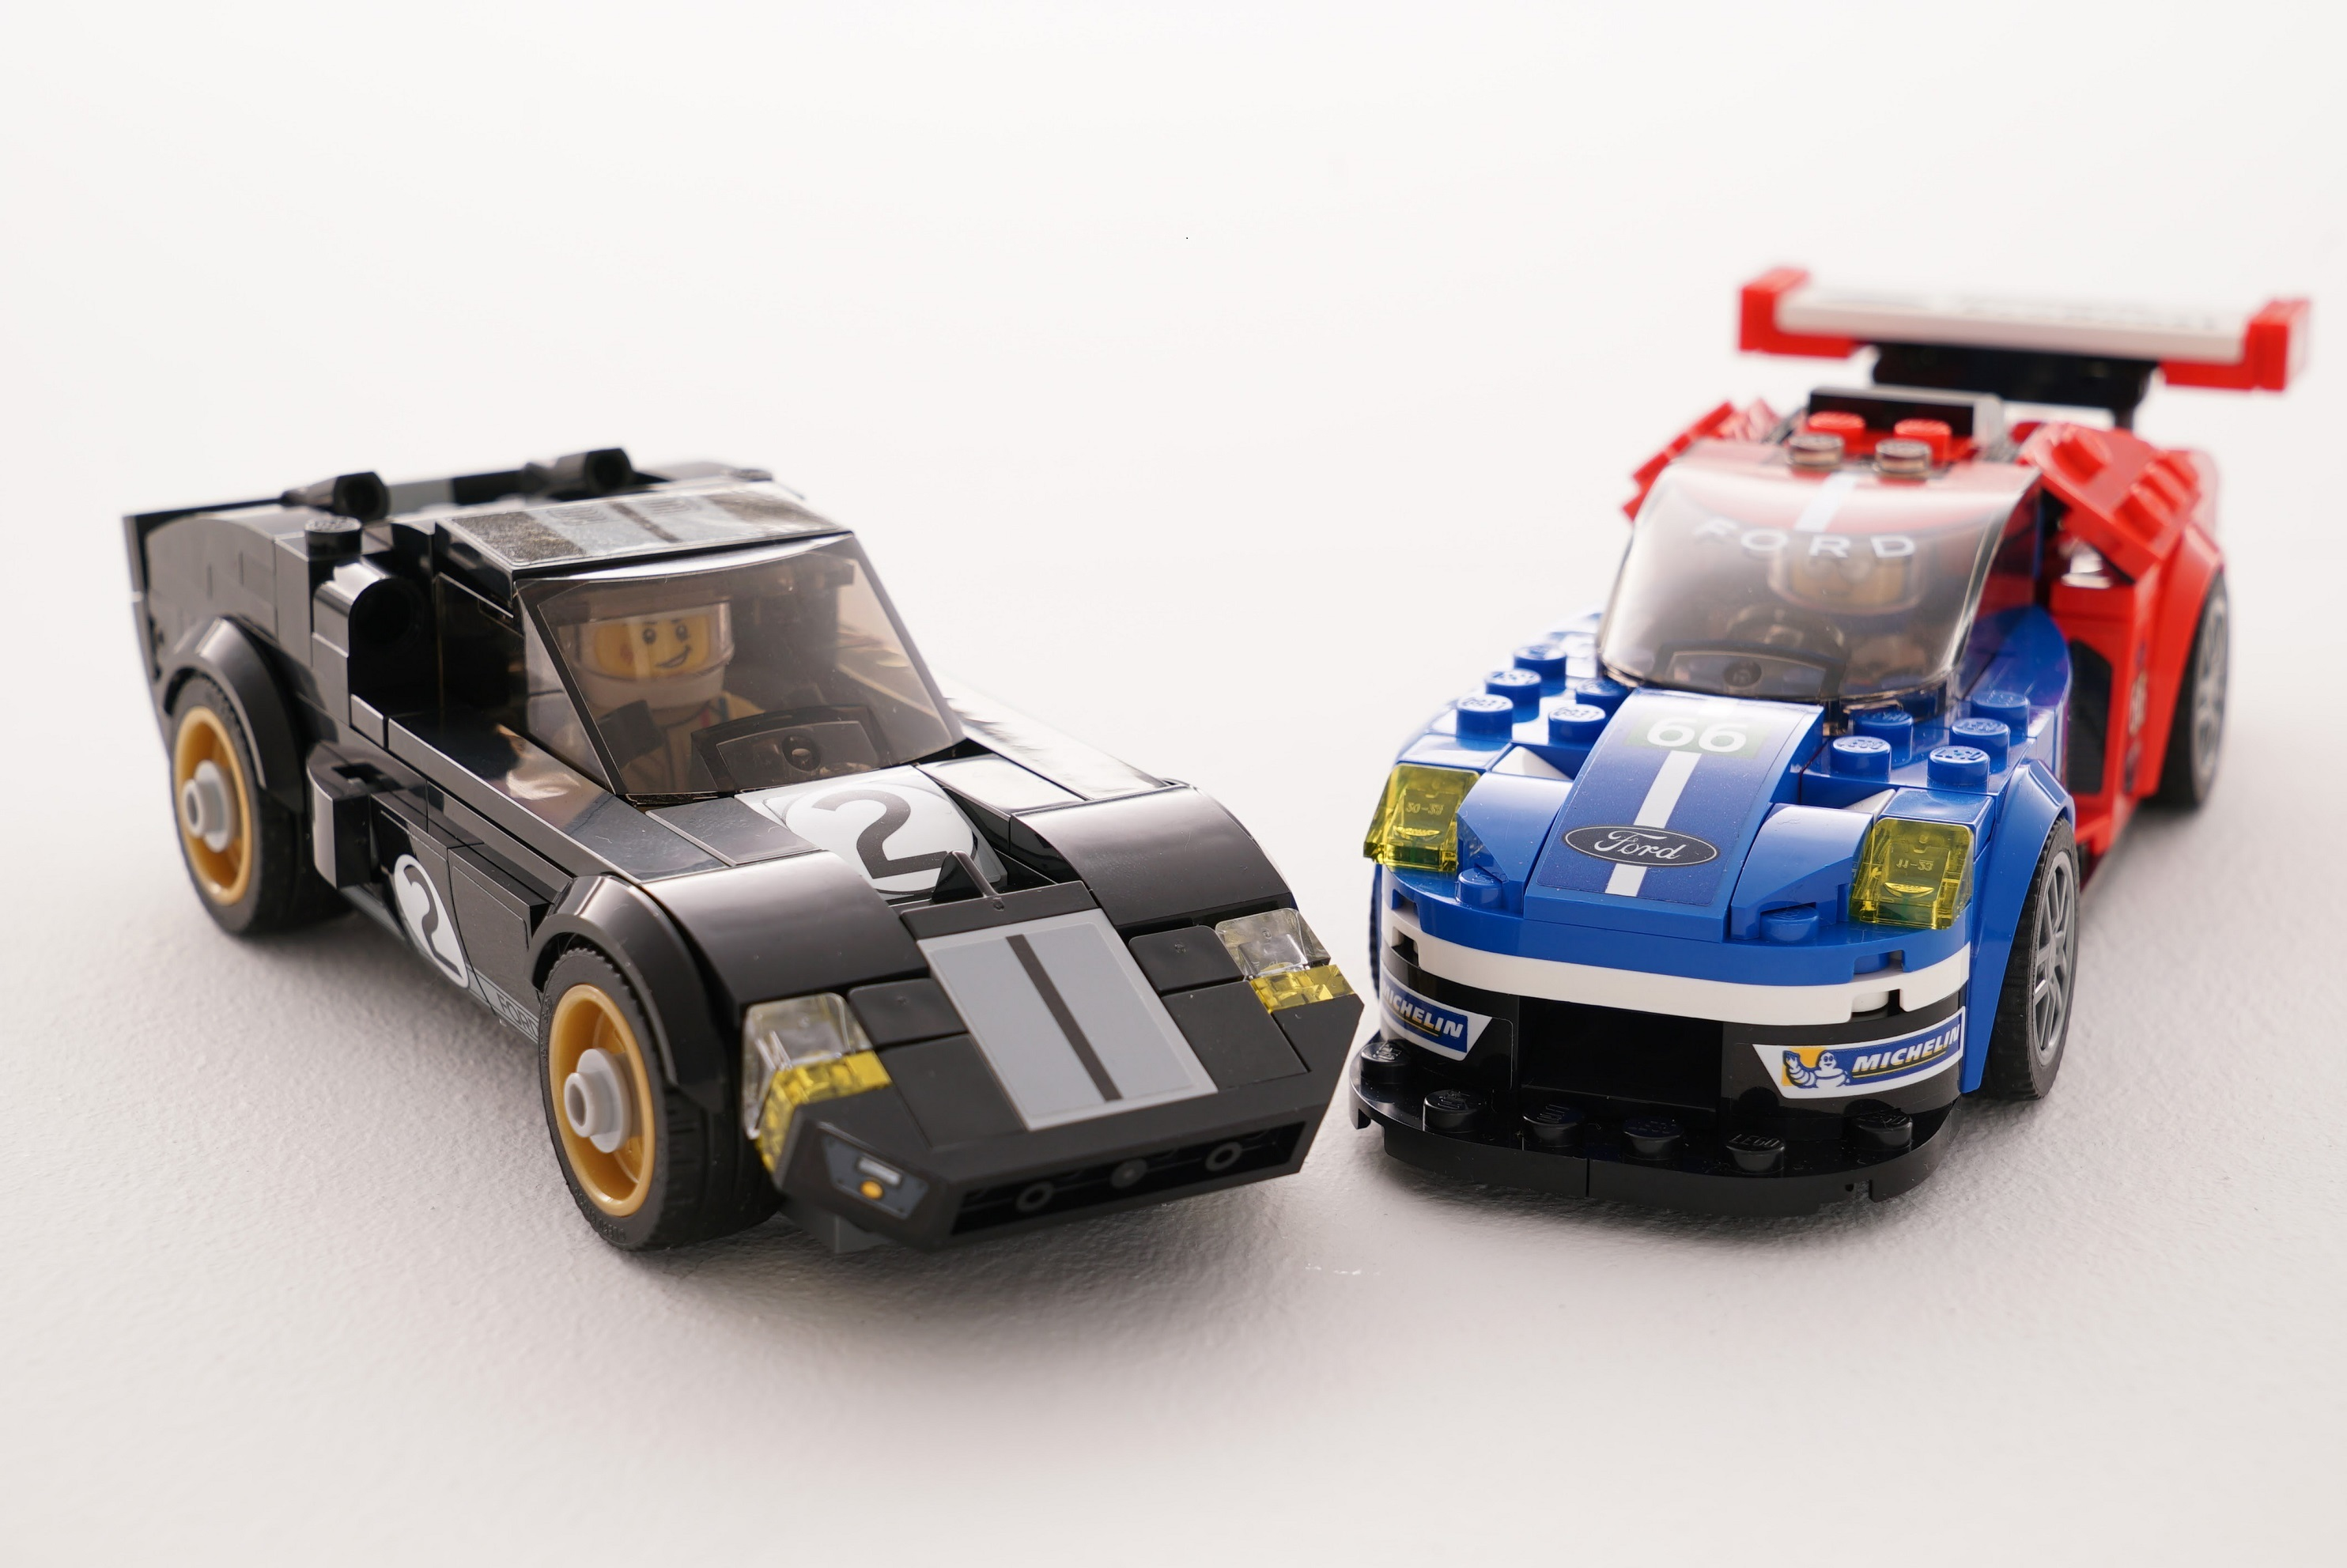 Designed to Inspire Tomorrow's Racing Drivers, Engineers and D